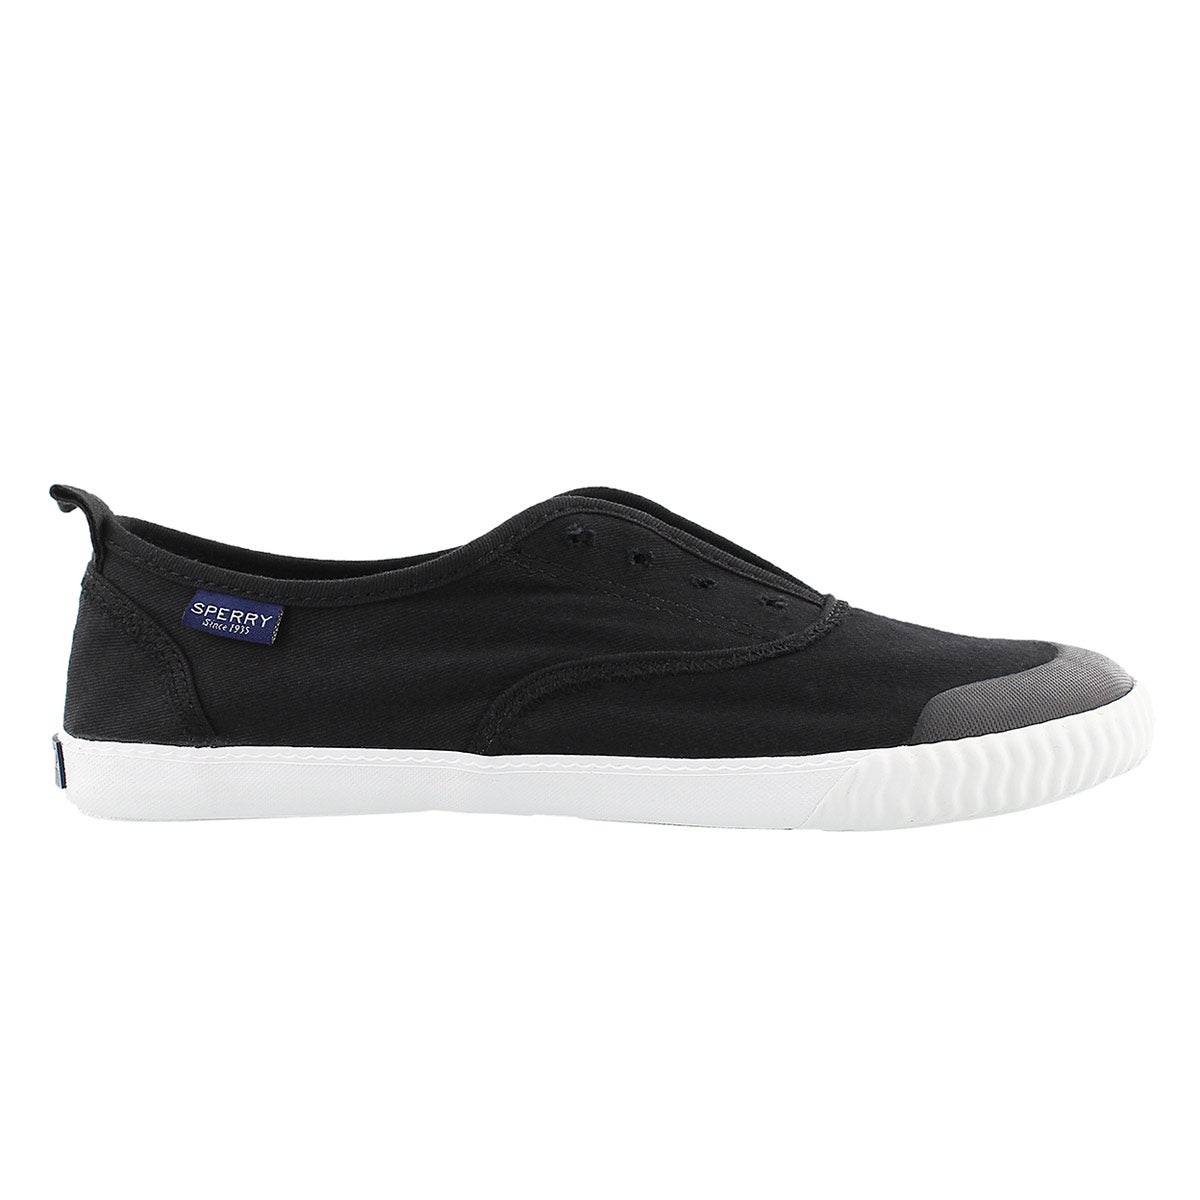 Lds Sayel Clew black wash sneaker